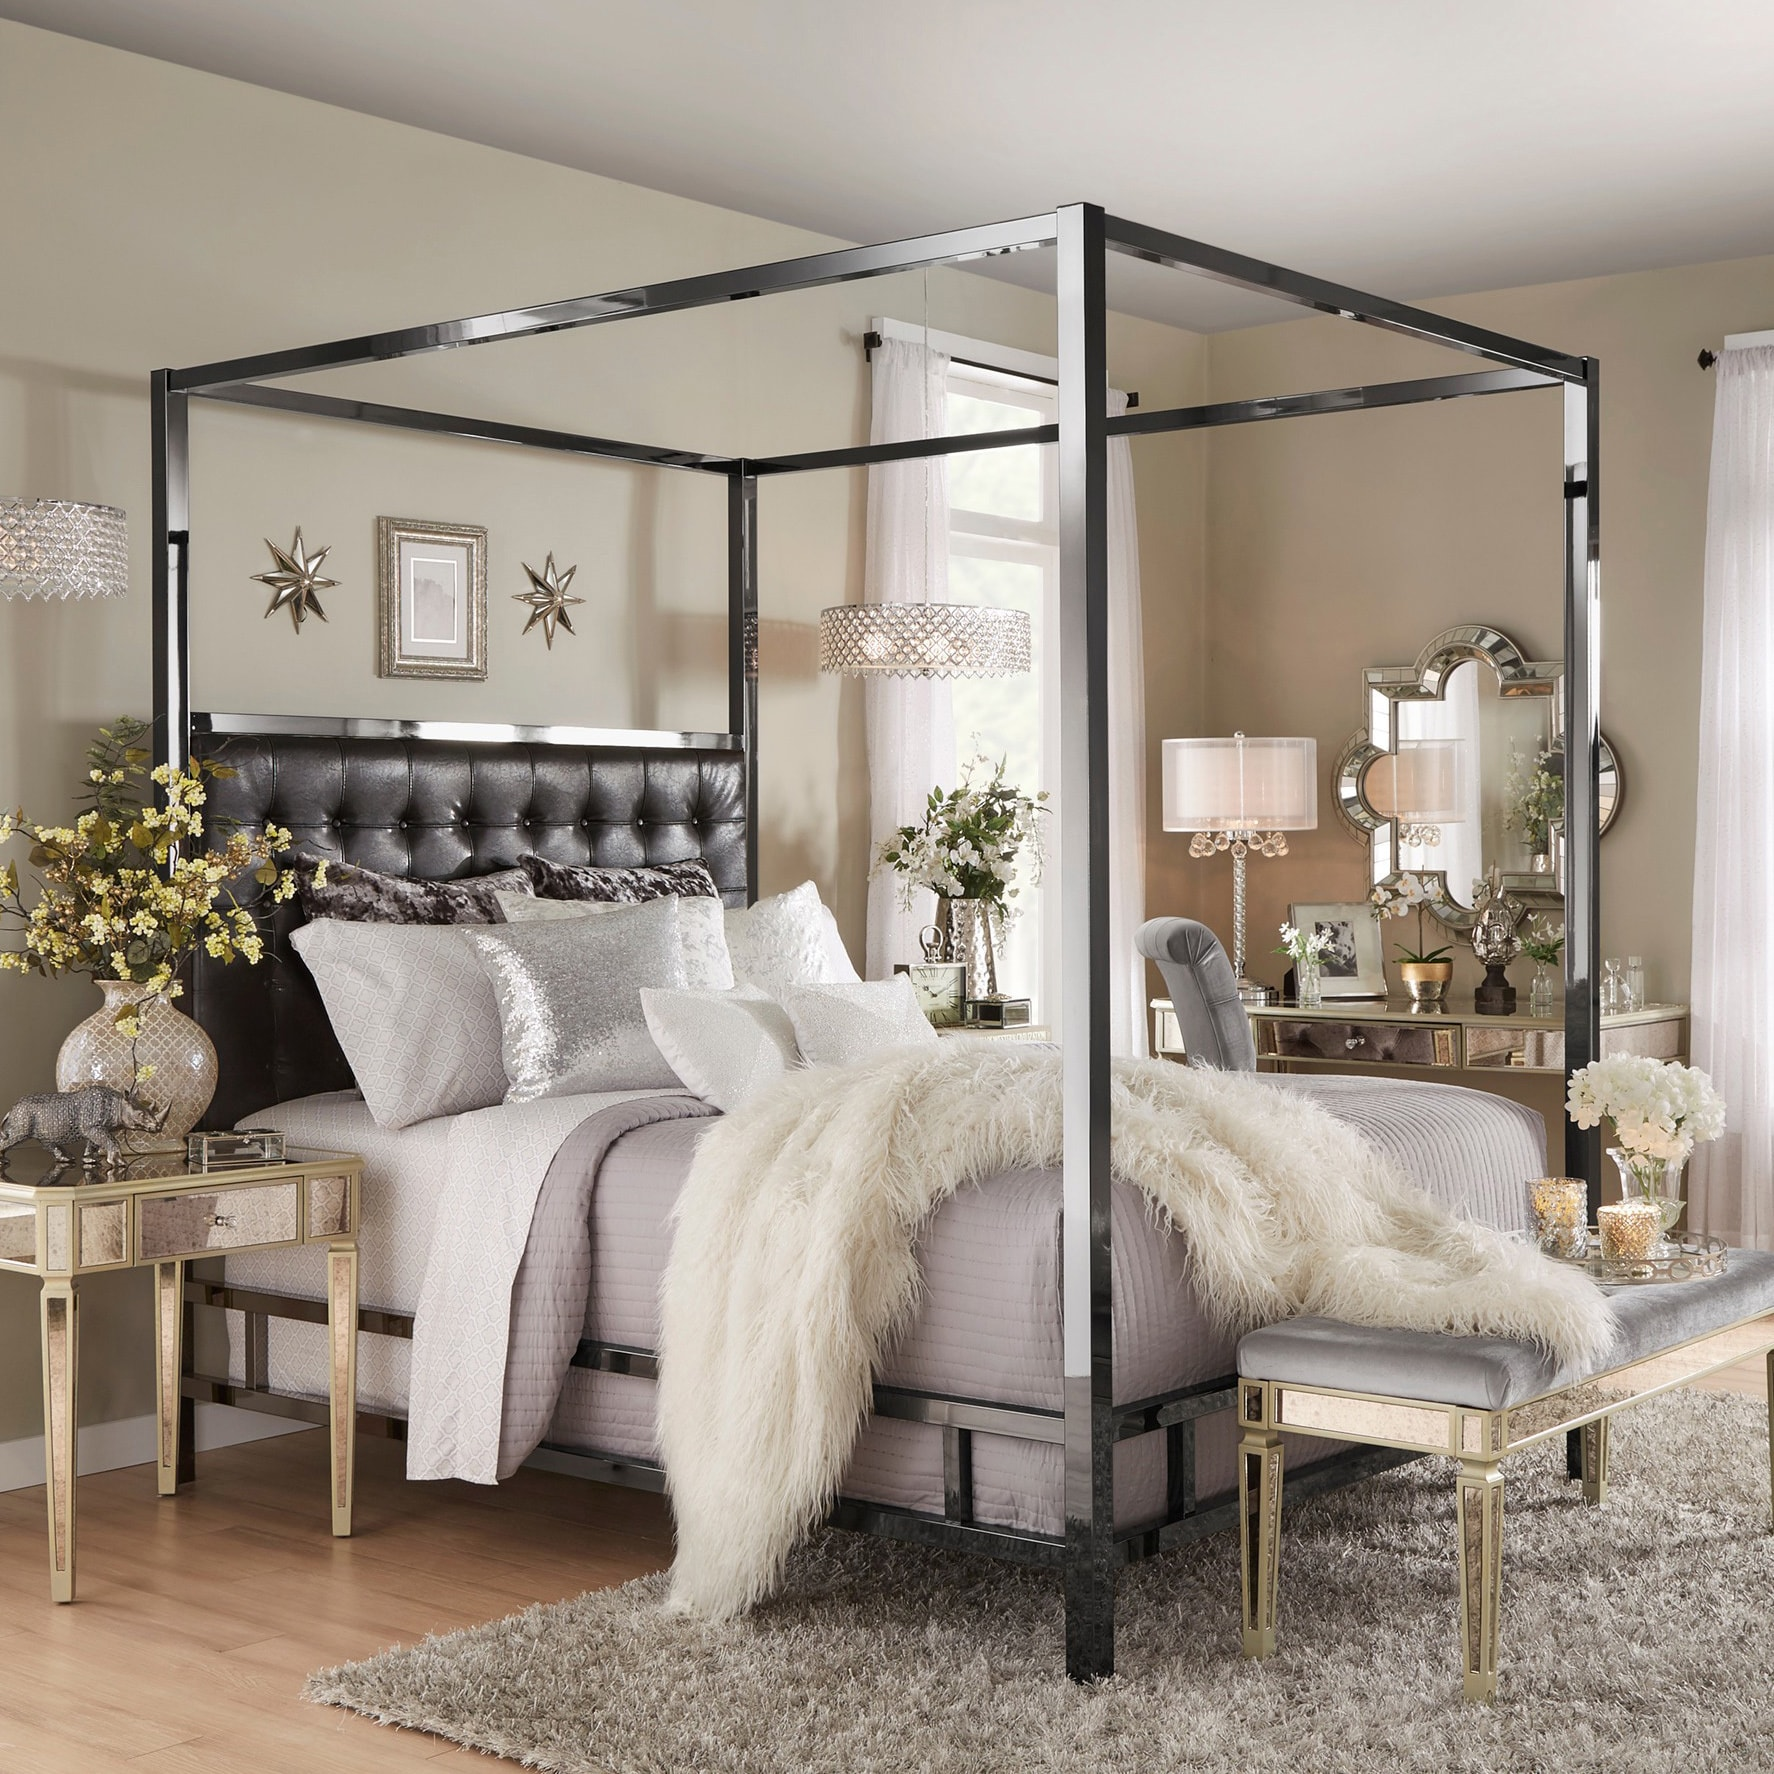 Solivita Black Nickel Metal Queen-size Canopy Poster Bed by iNSPIRE Q Bold  - Free Shipping Today - Overstock.com - 20696573